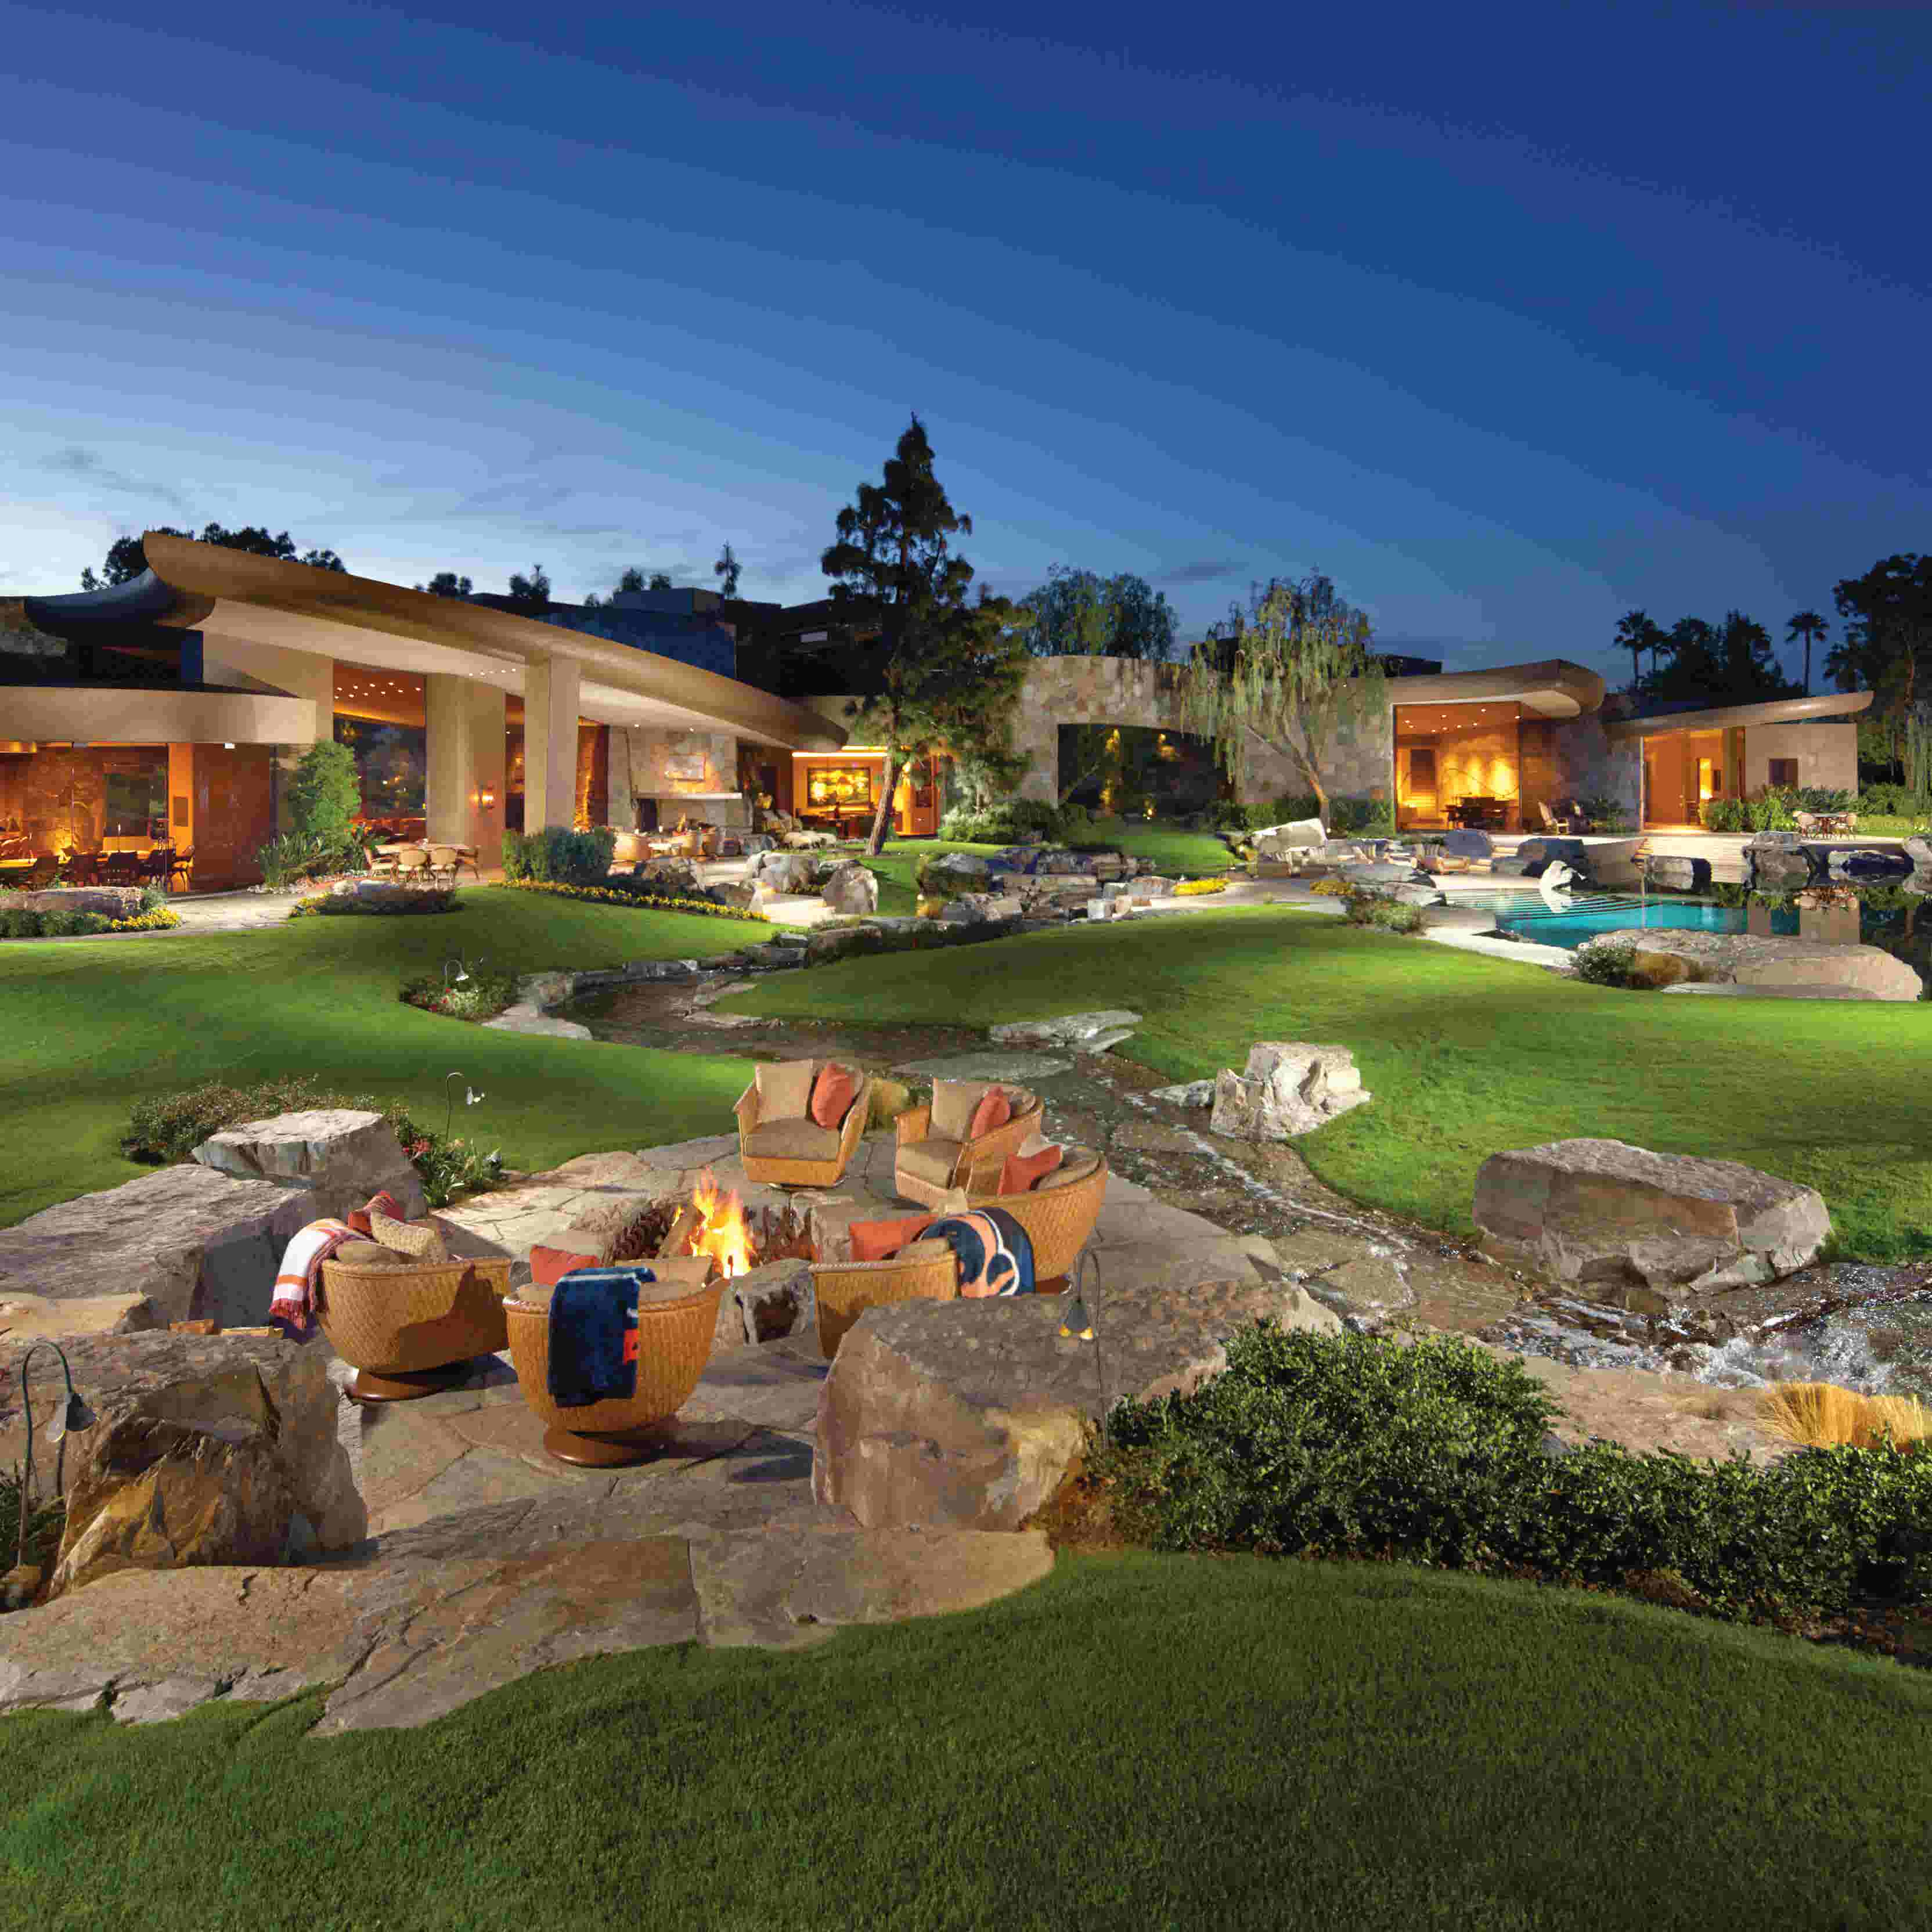 Most Expensive House In La >> Desert S Most Expensive Home On The Market In La Quinta